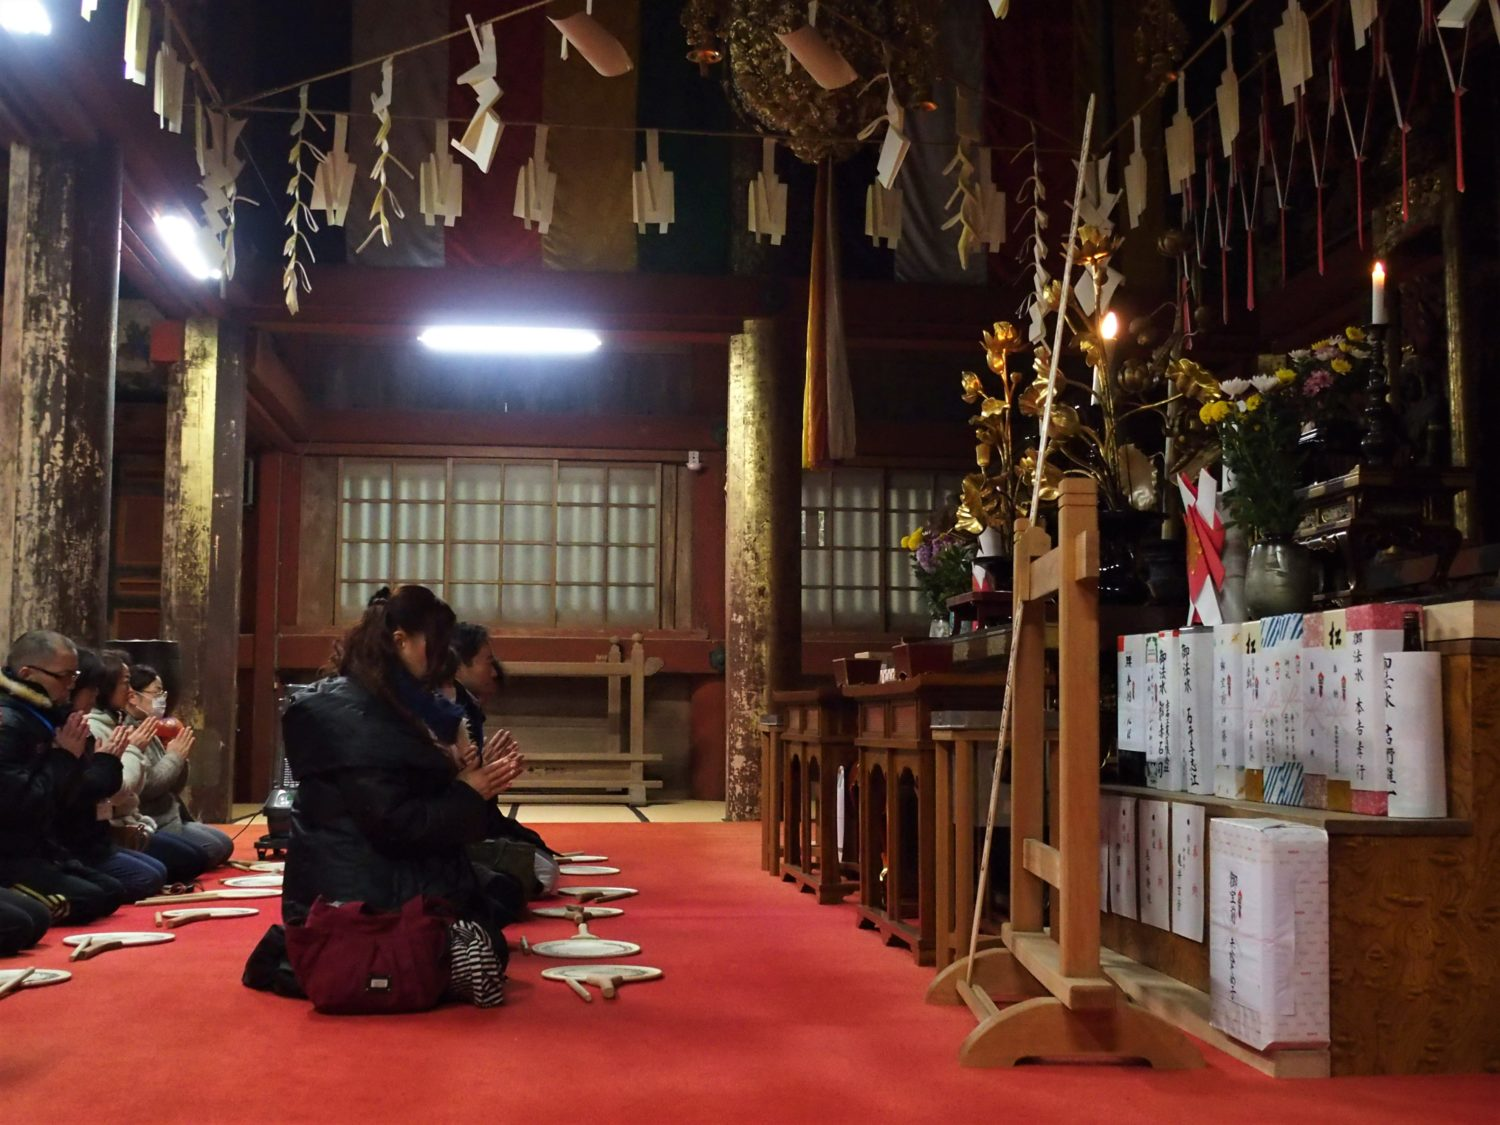 Morning Buddhist services at Daido (Main Hall)